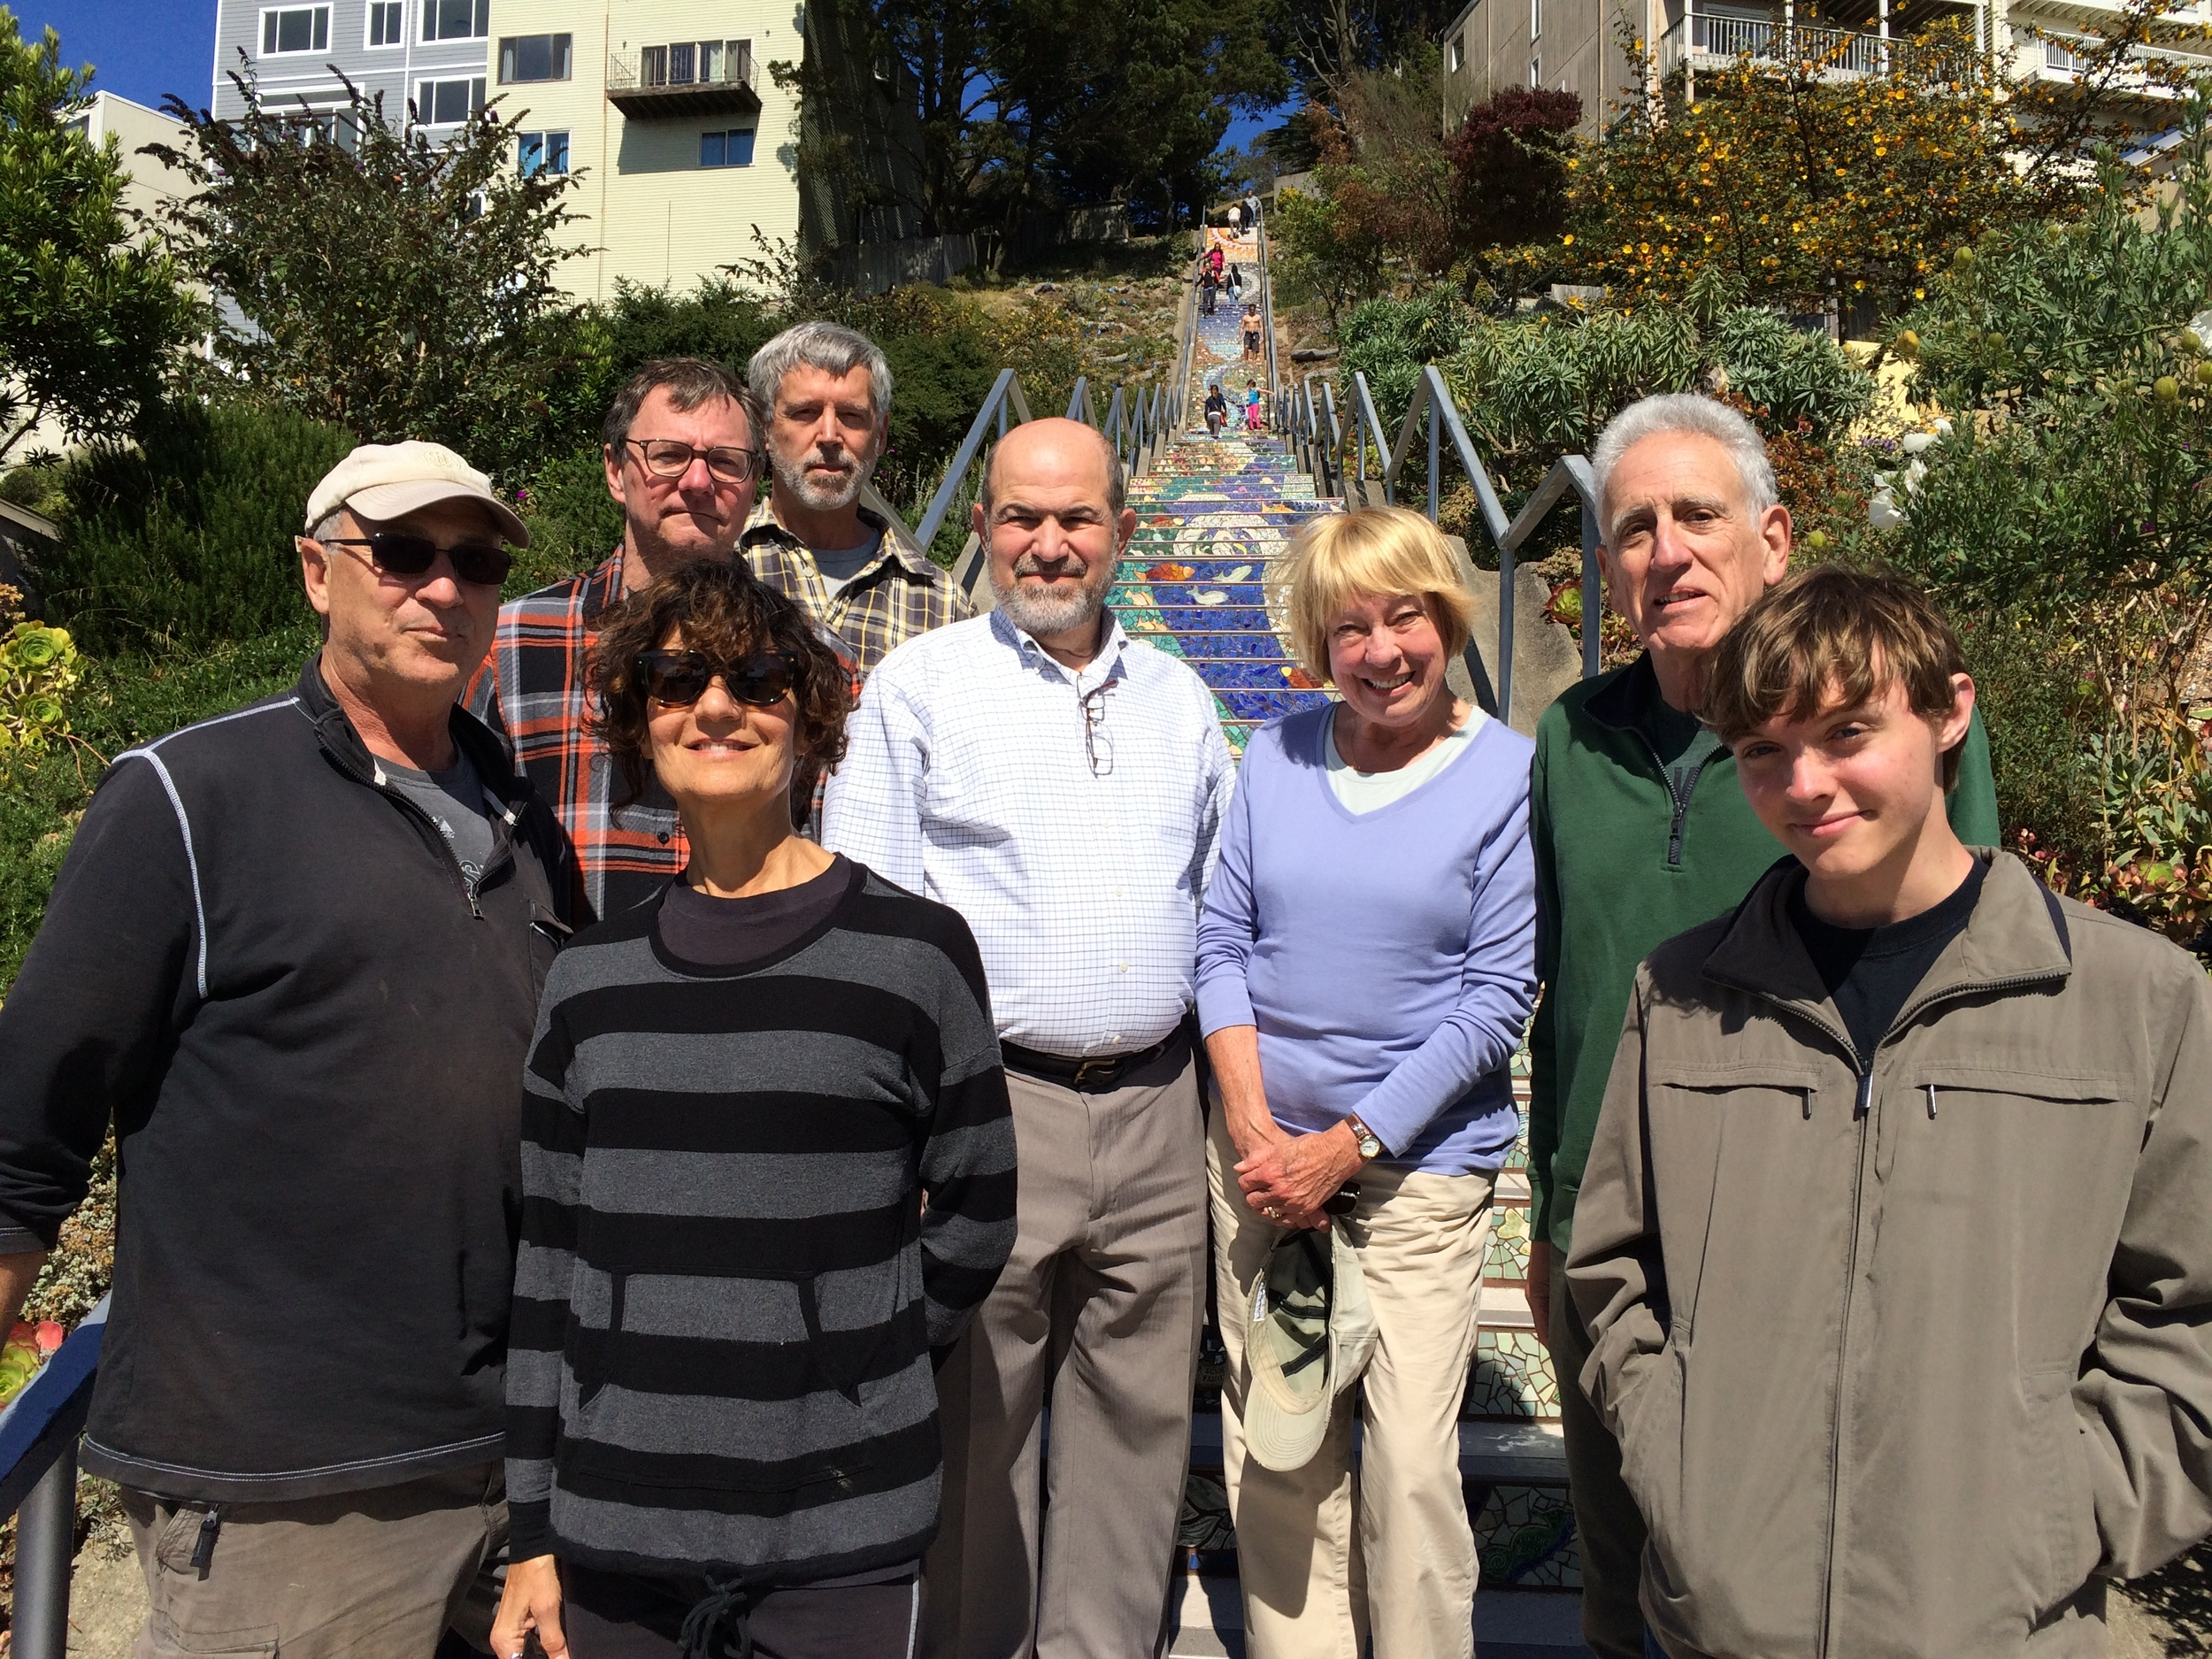 Westside residents and court watch members at the Moraga tiled steps in Golden Gate Heights, the scene of many auto burglaries.